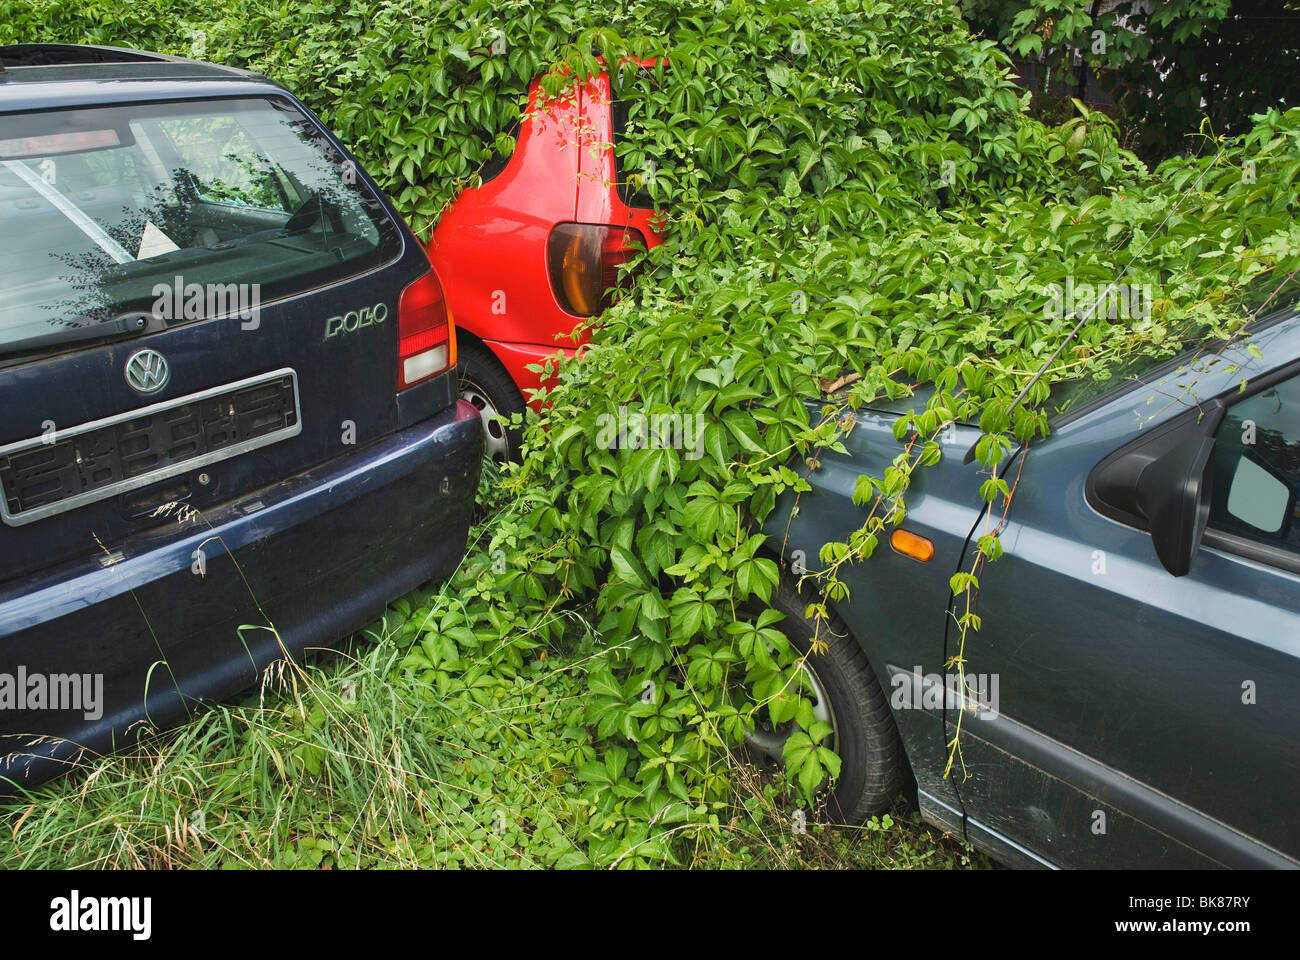 Parked cars overgrown with creepers, wrecking yard, environmental bonus - Stock Image